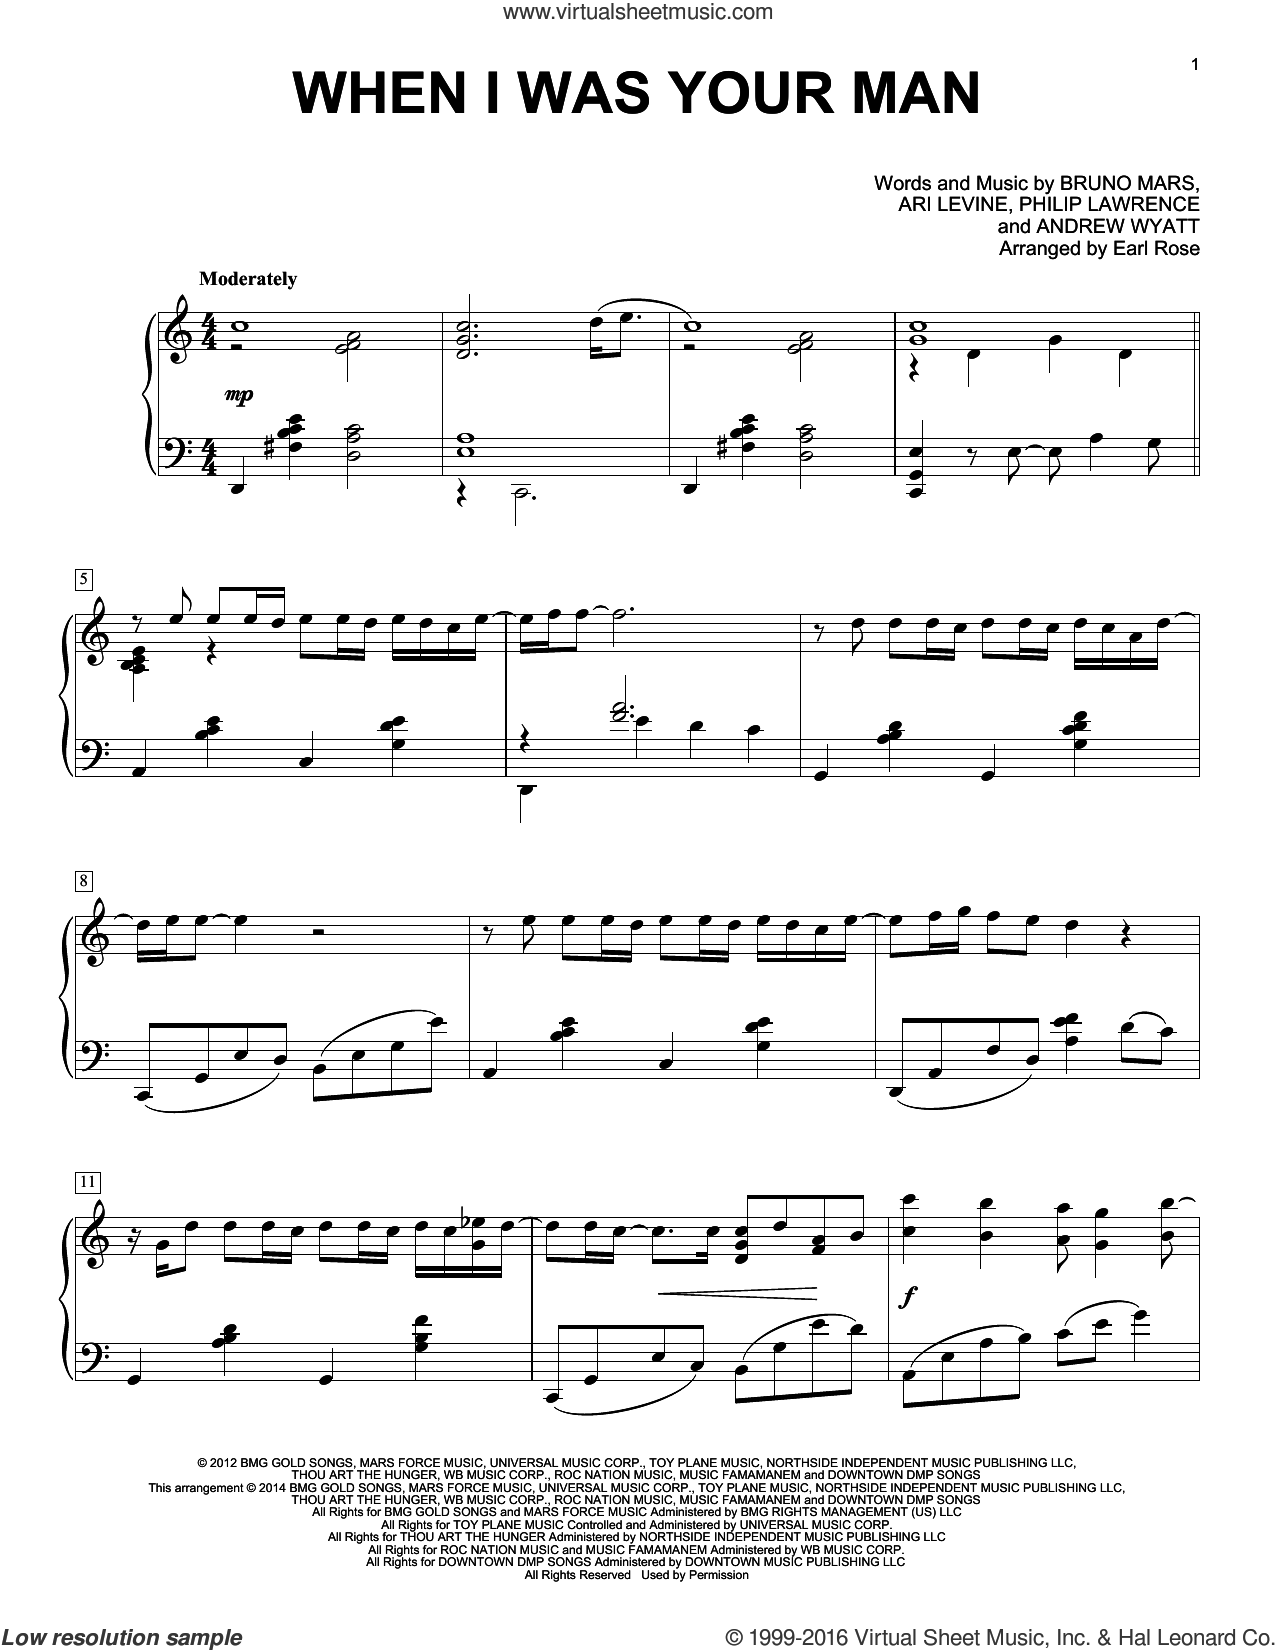 When I Was Your Man, (intermediate) sheet music for piano solo by Bruno Mars, Earl Rose, Andrew Wyatt, Ari Levine and Philip Lawrence, intermediate skill level